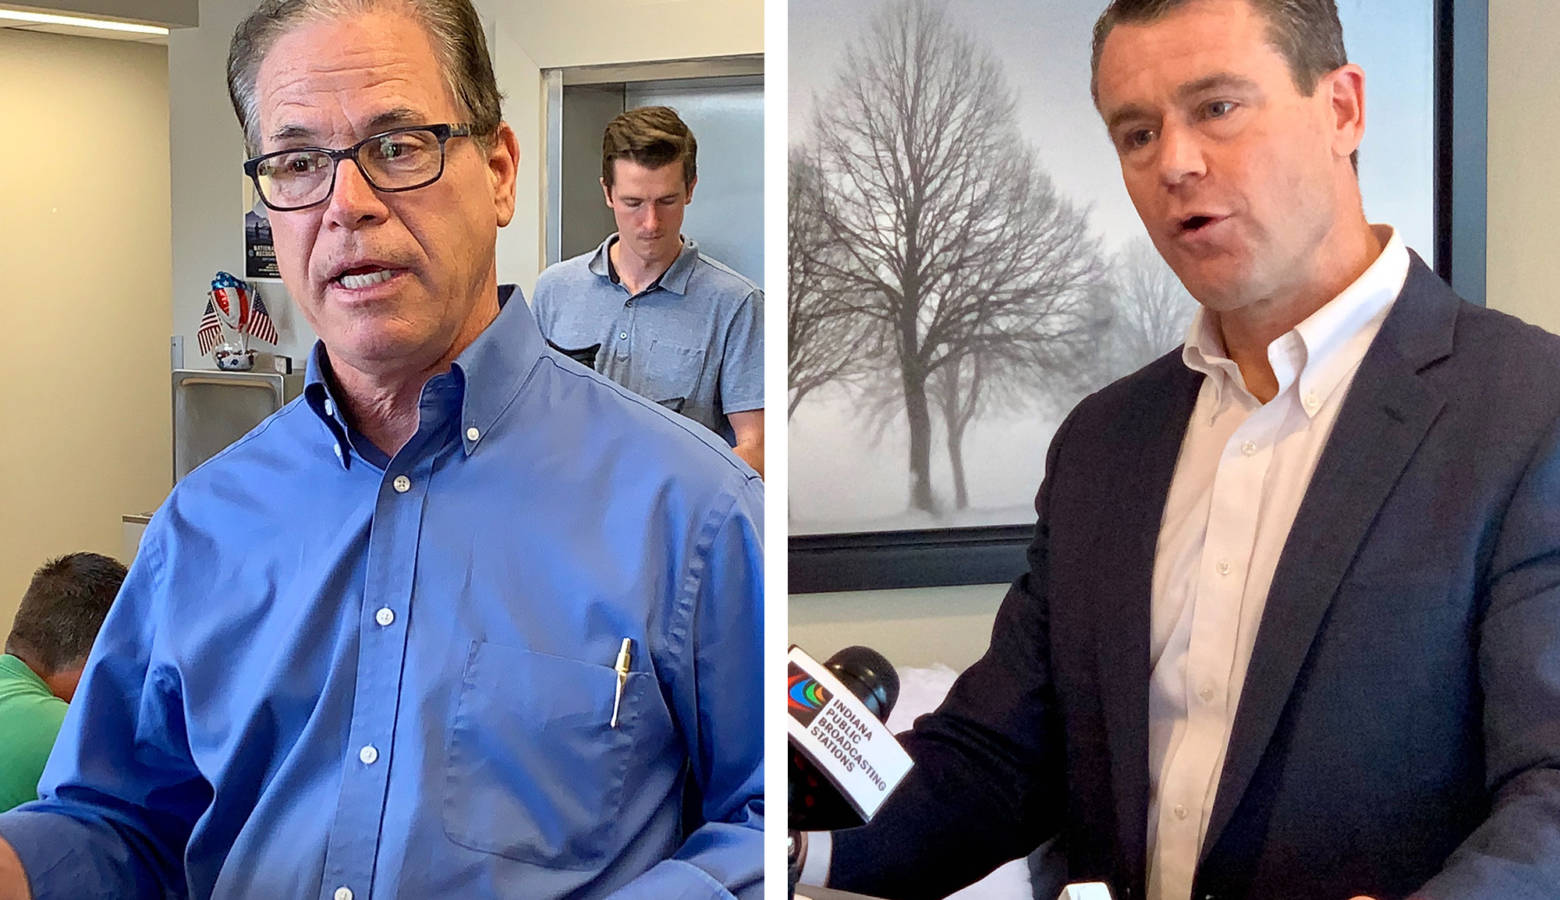 U.S. Sens. Mike Braun (R-Ind.) and Todd Young (R-Ind.). (Brandon Smith/IPB News)